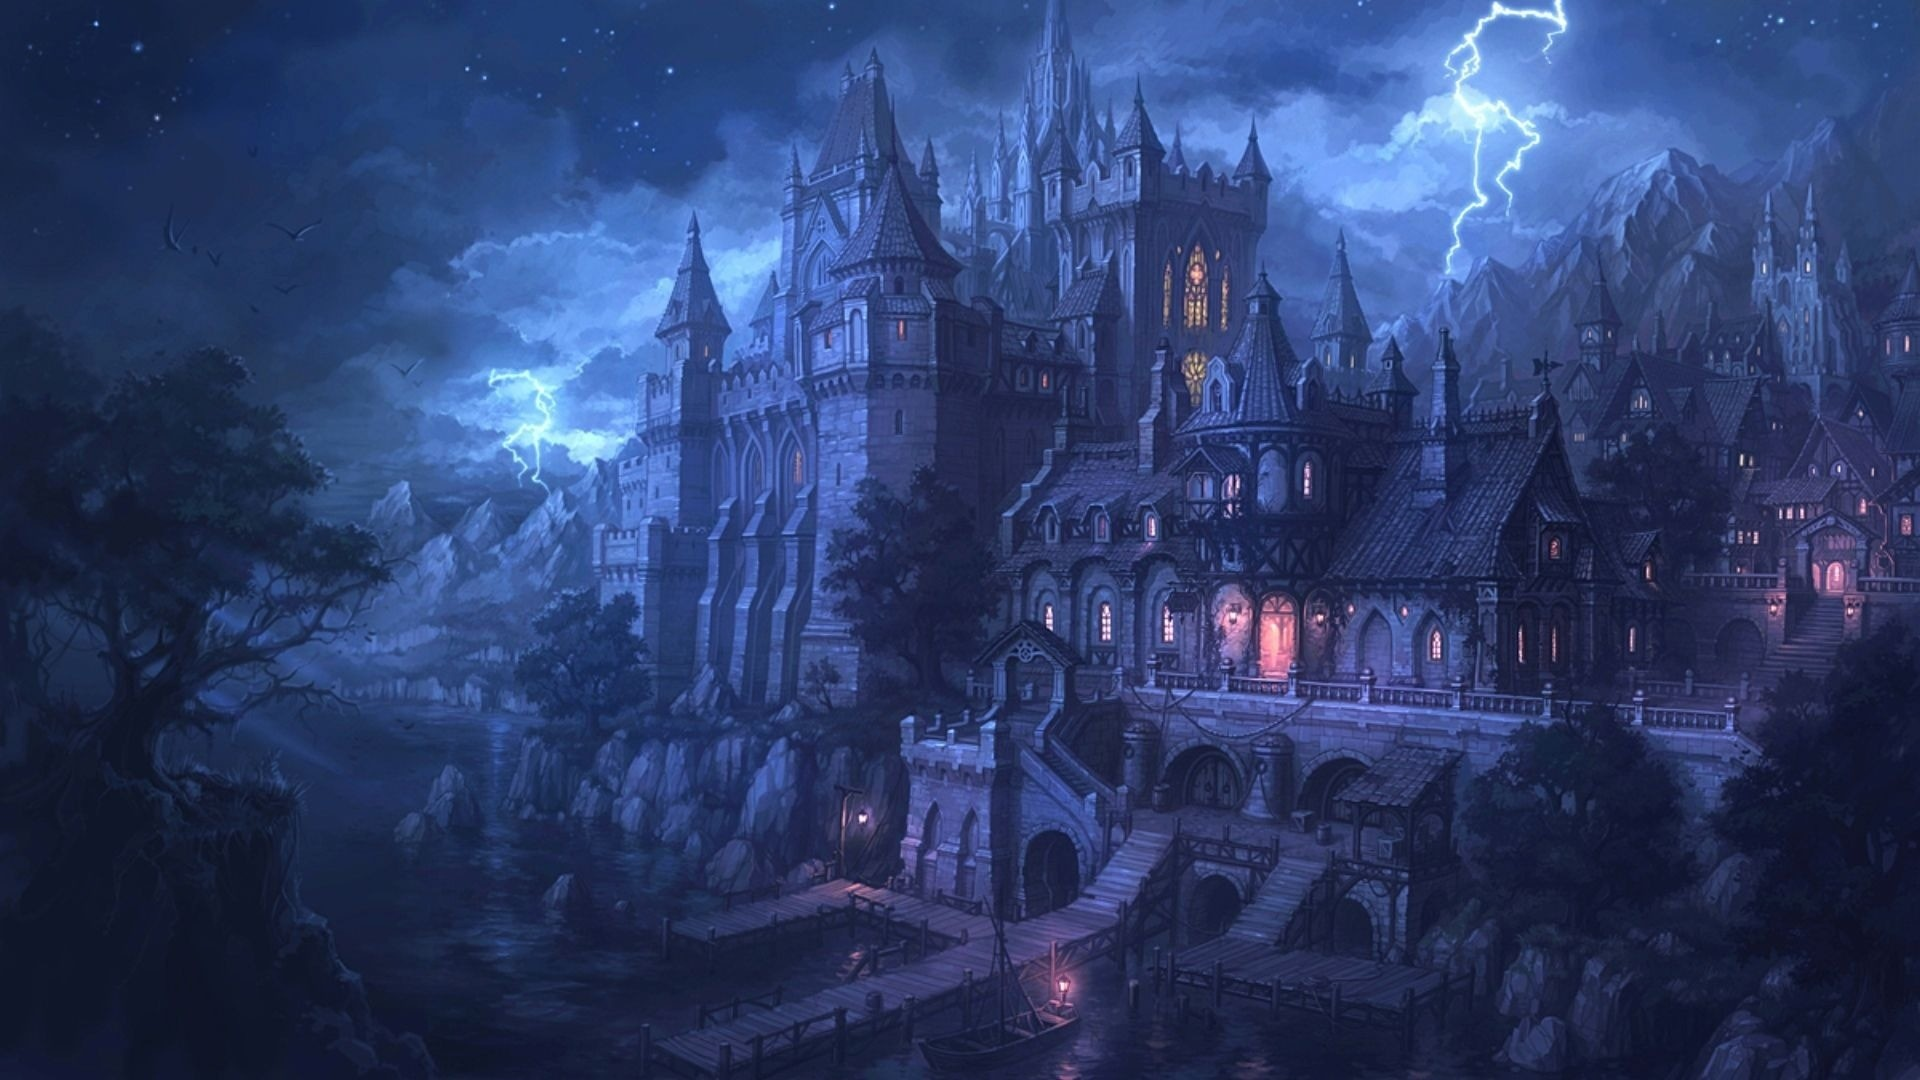 1920x1080 Fantasy Dark Castle Wallpaper Widescreen 2 HD Wallpapers